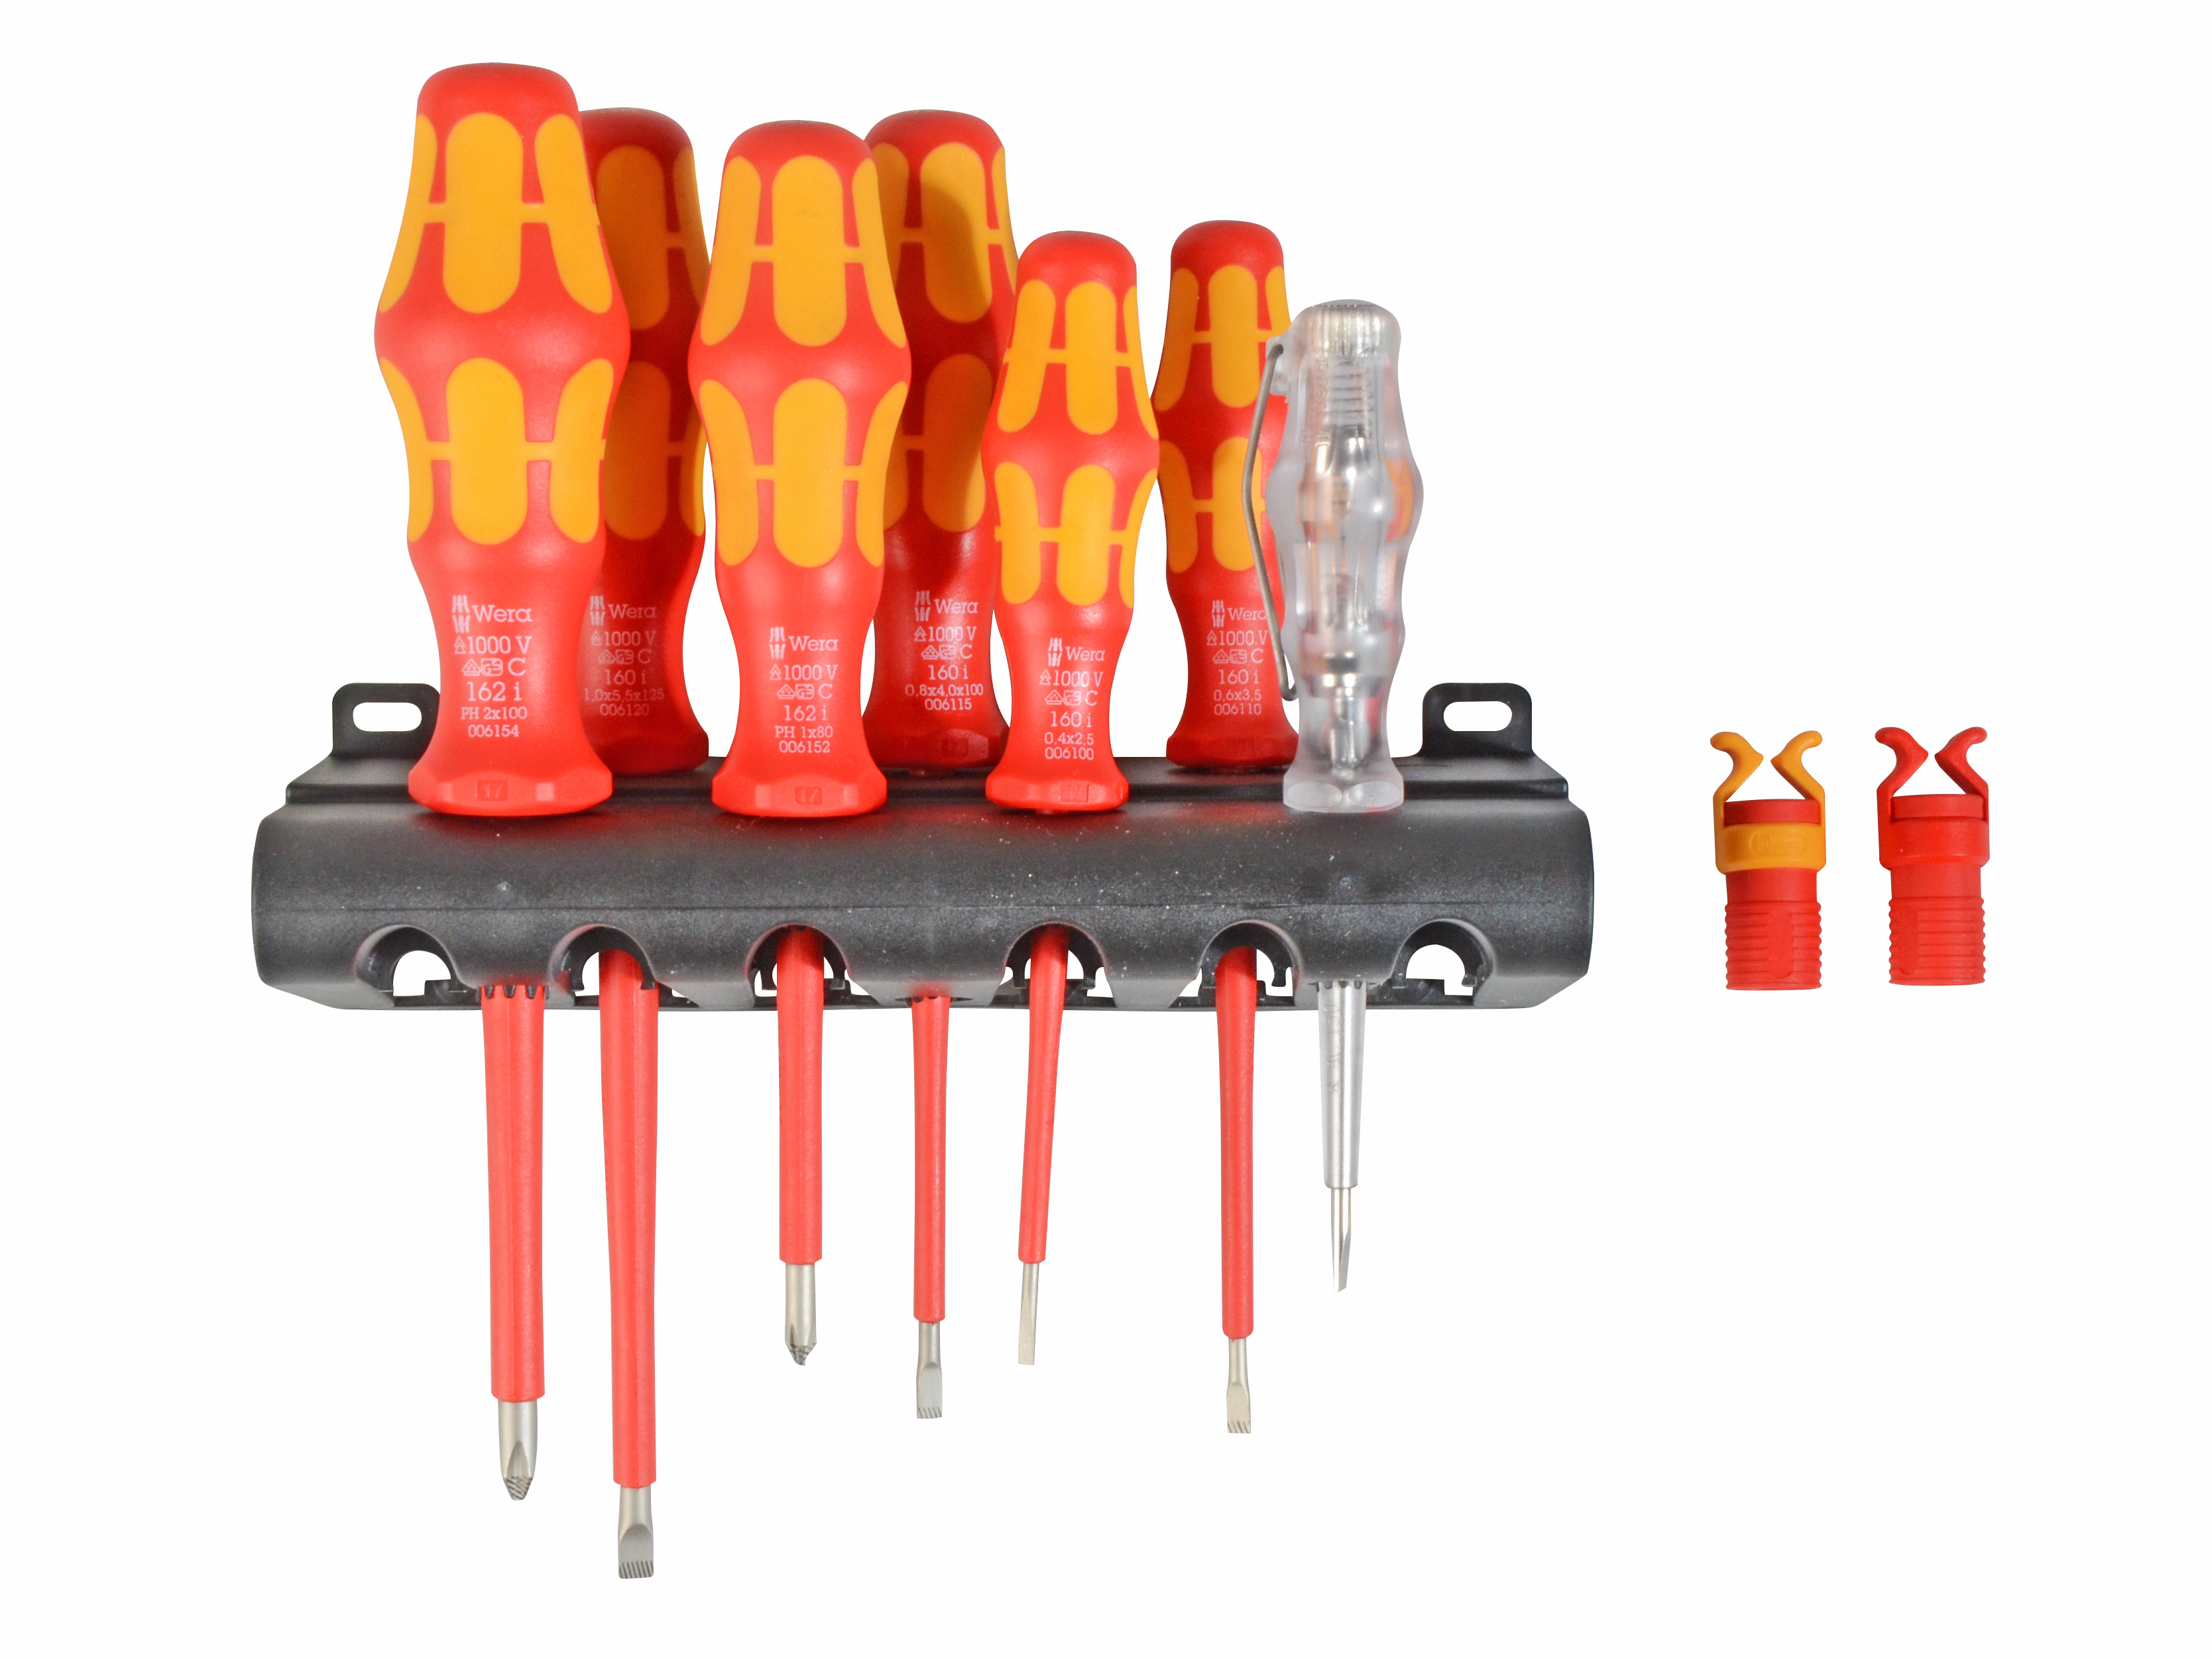 Wera Vde Screwdriver Set With Grippers Tools First Kraftform Voltage Tester Circuit Testers